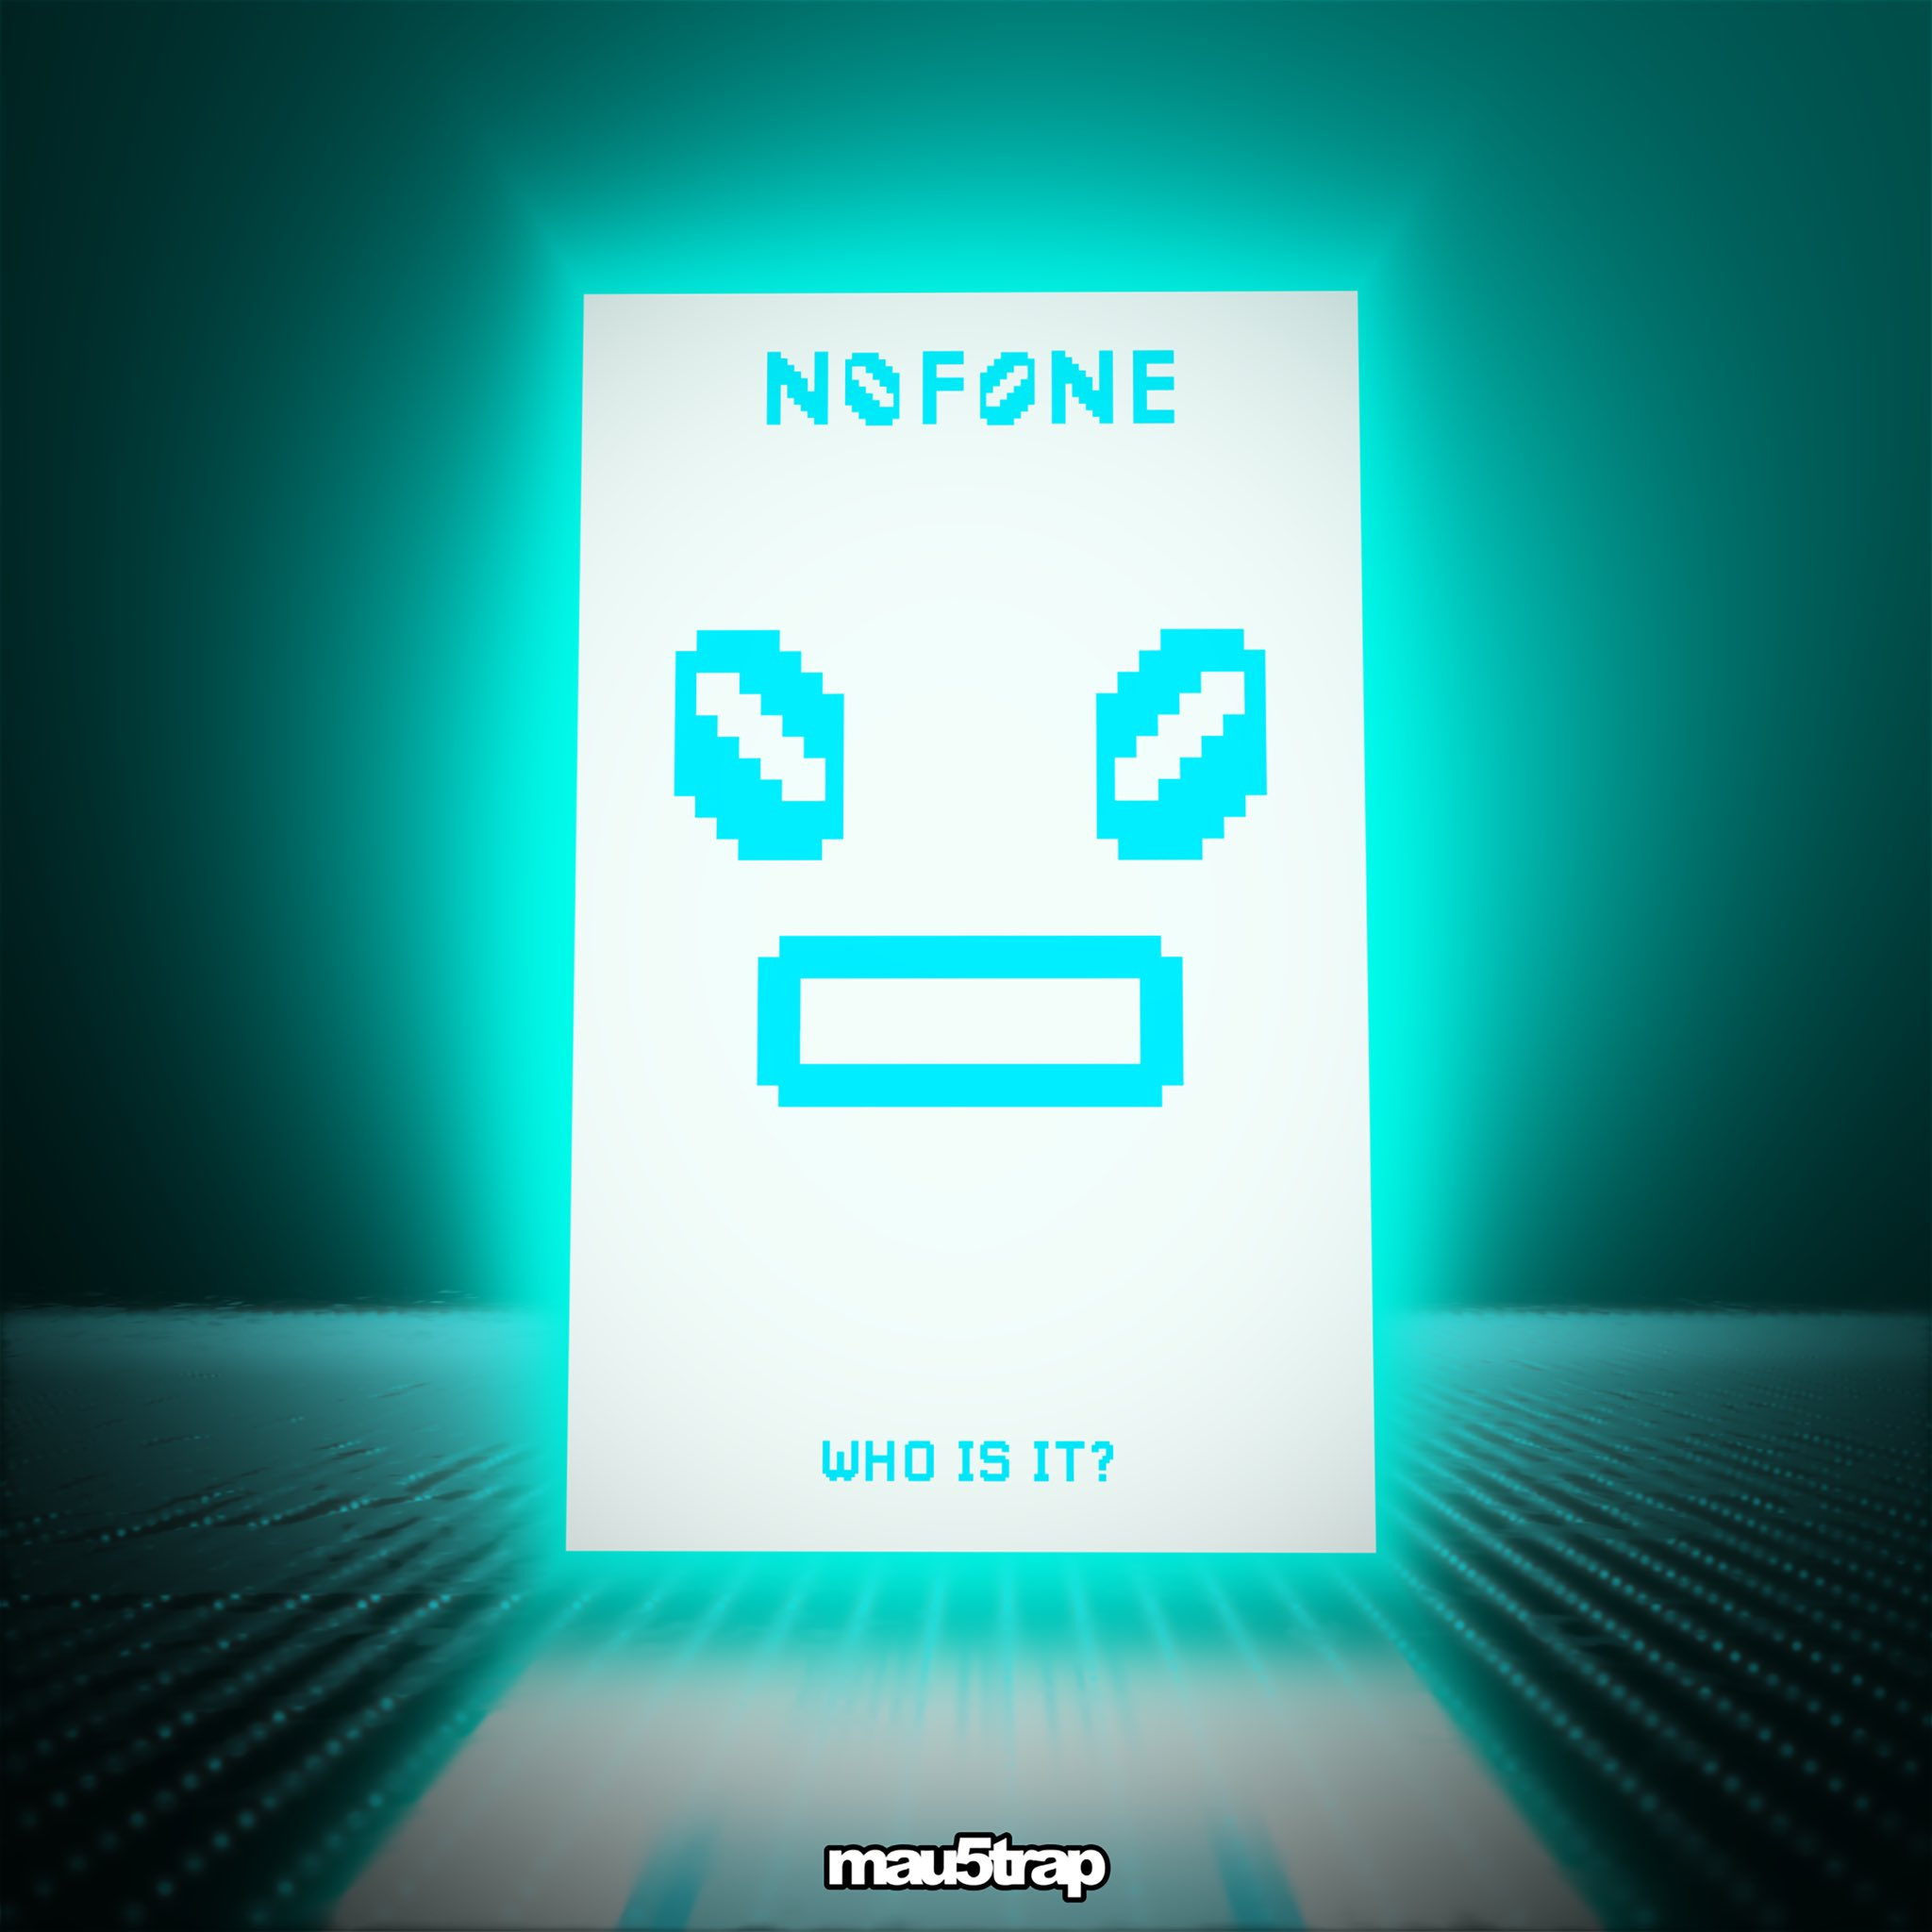 nofone official image for mau5trap